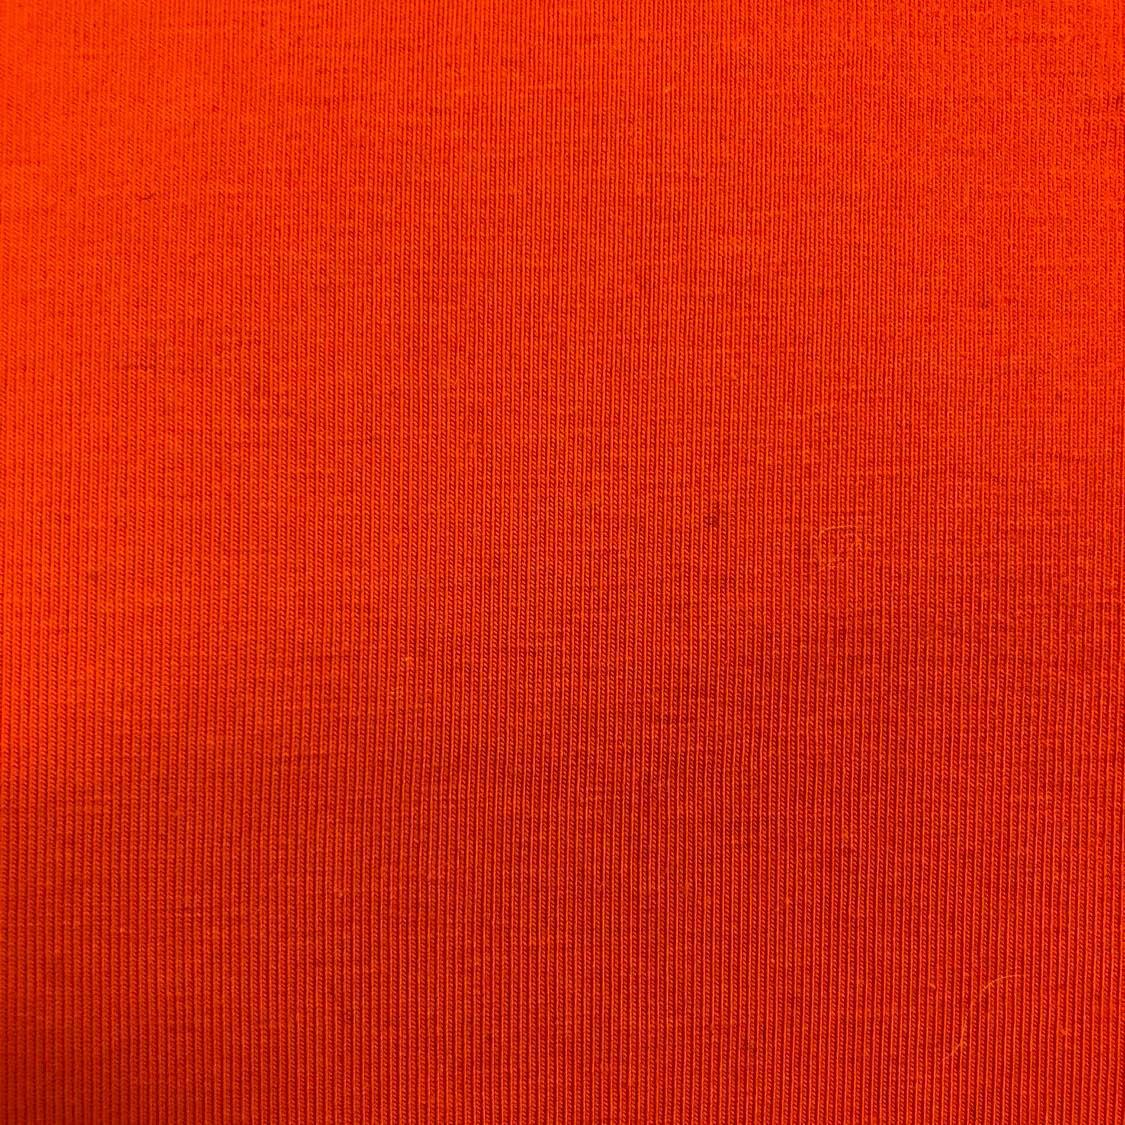 Coral 45105 jersey